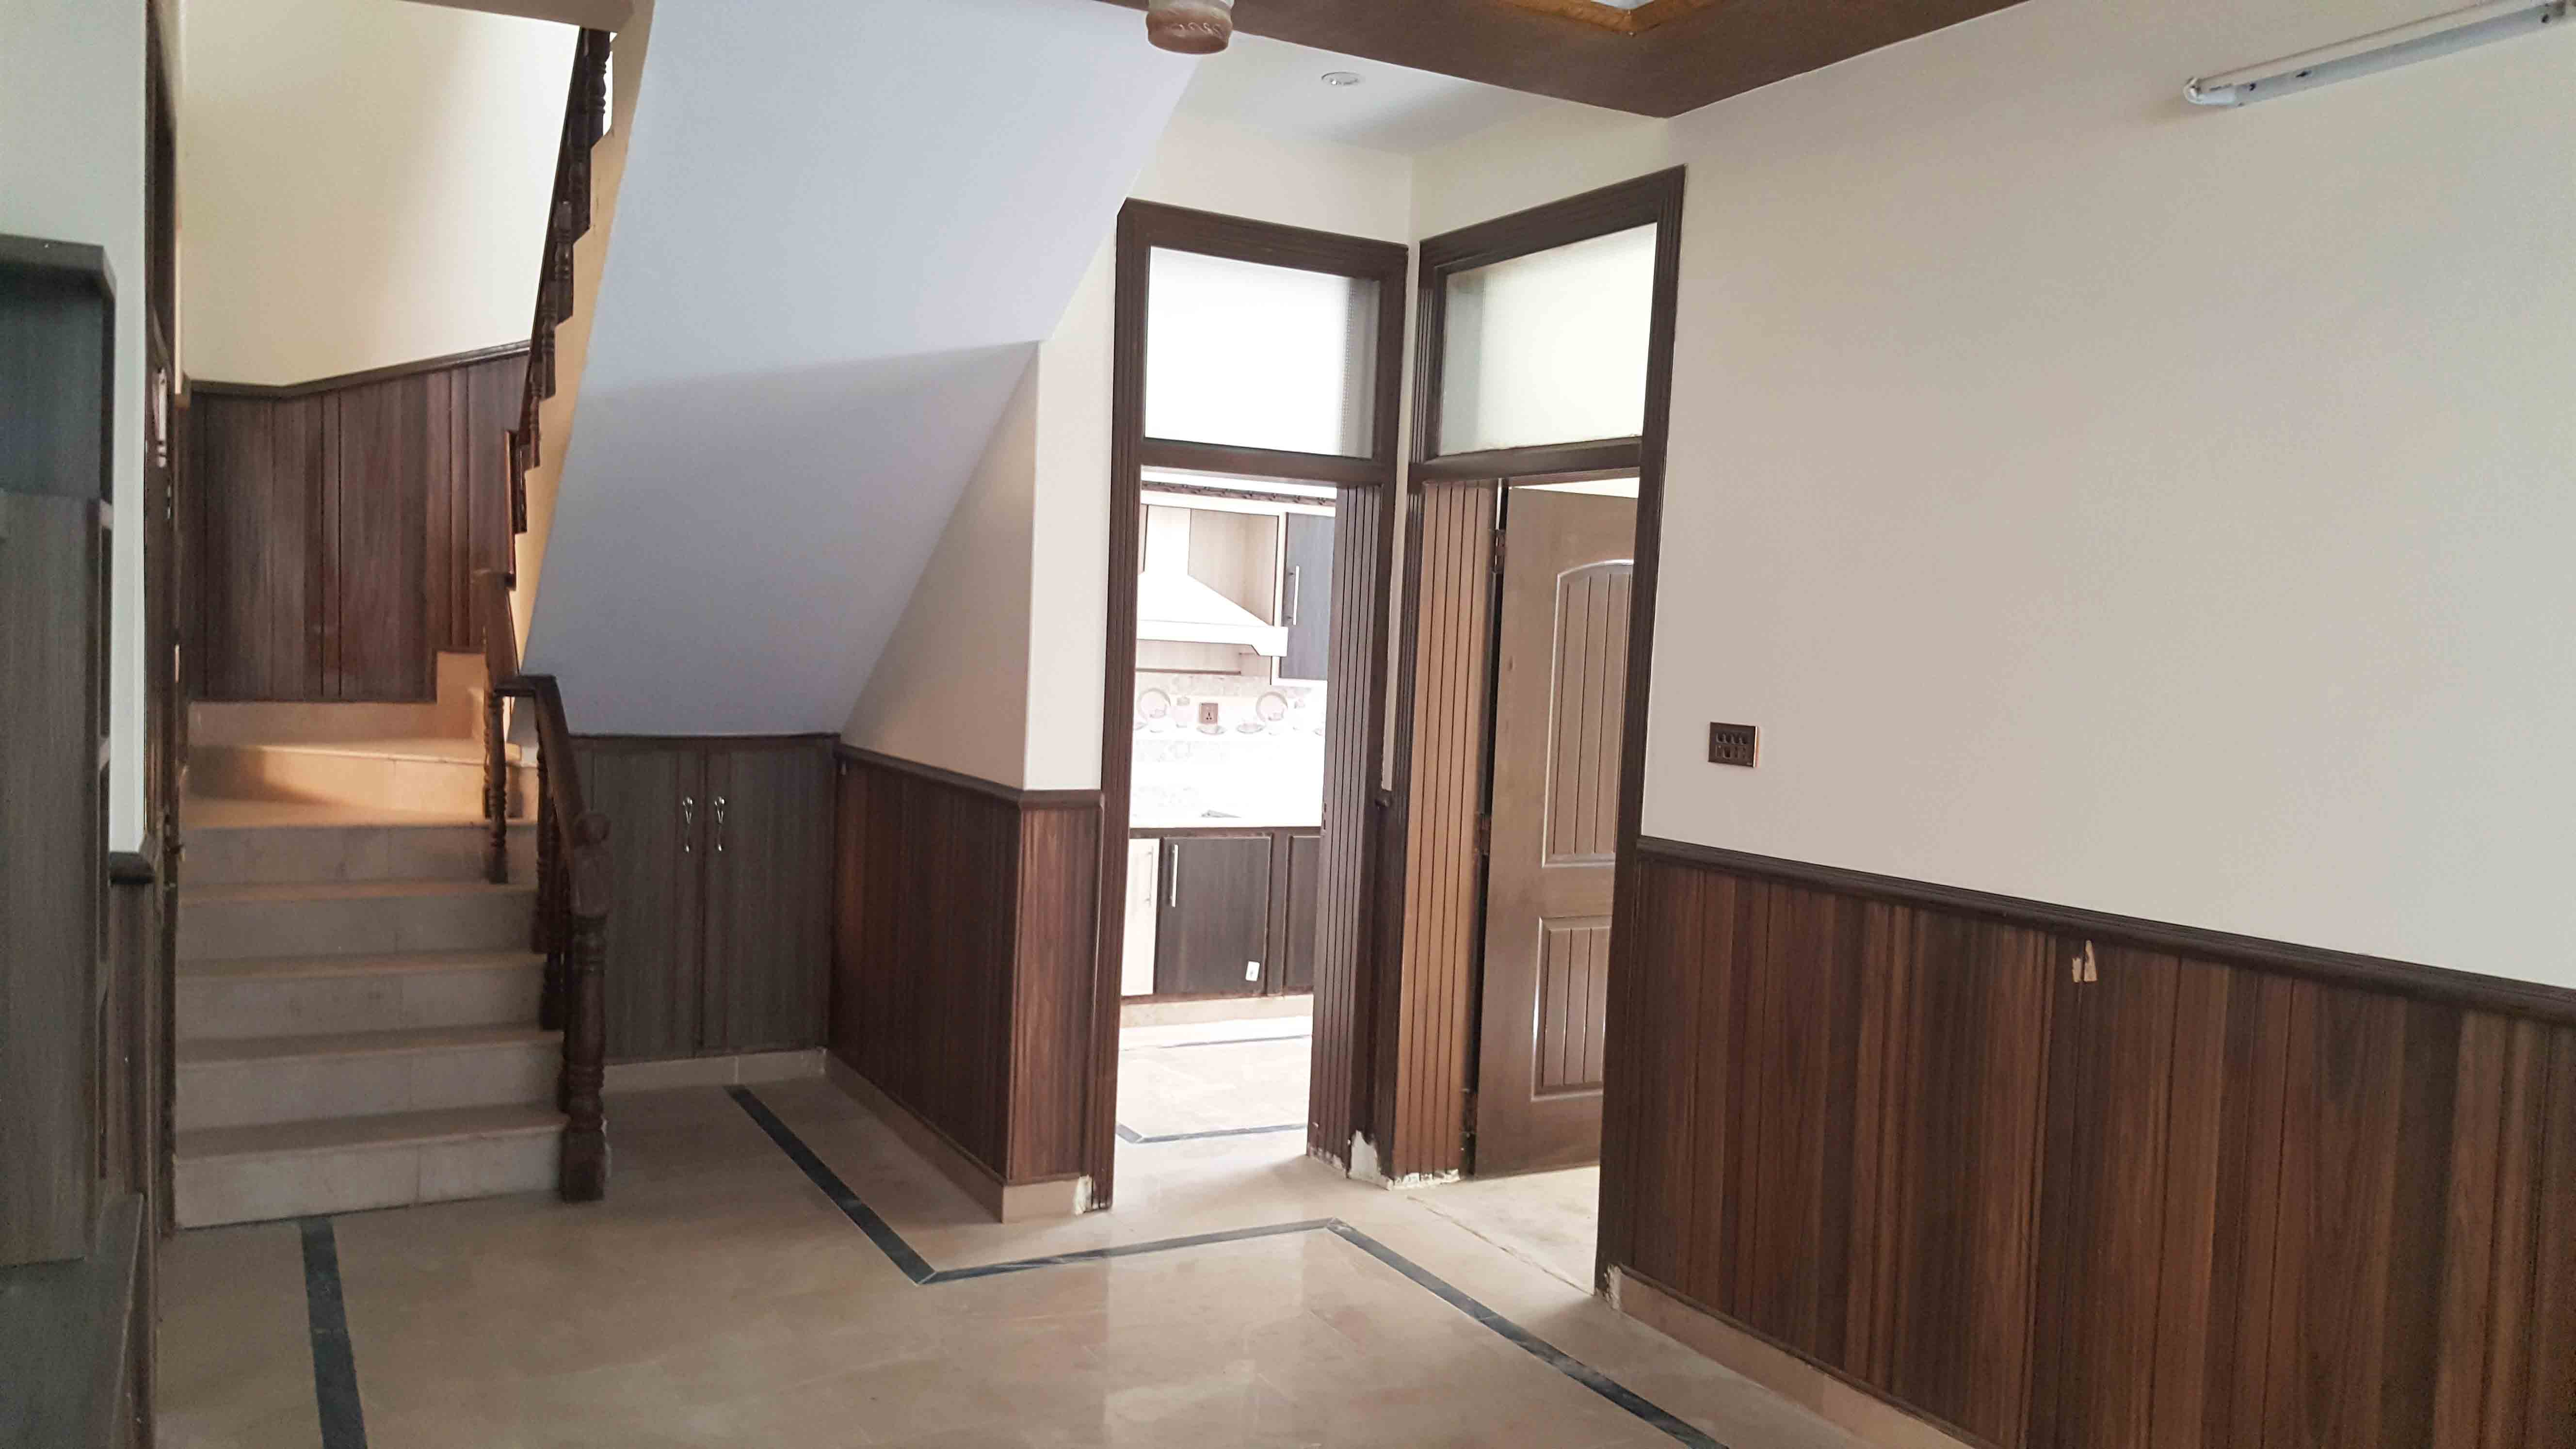 House for sale at samungli road